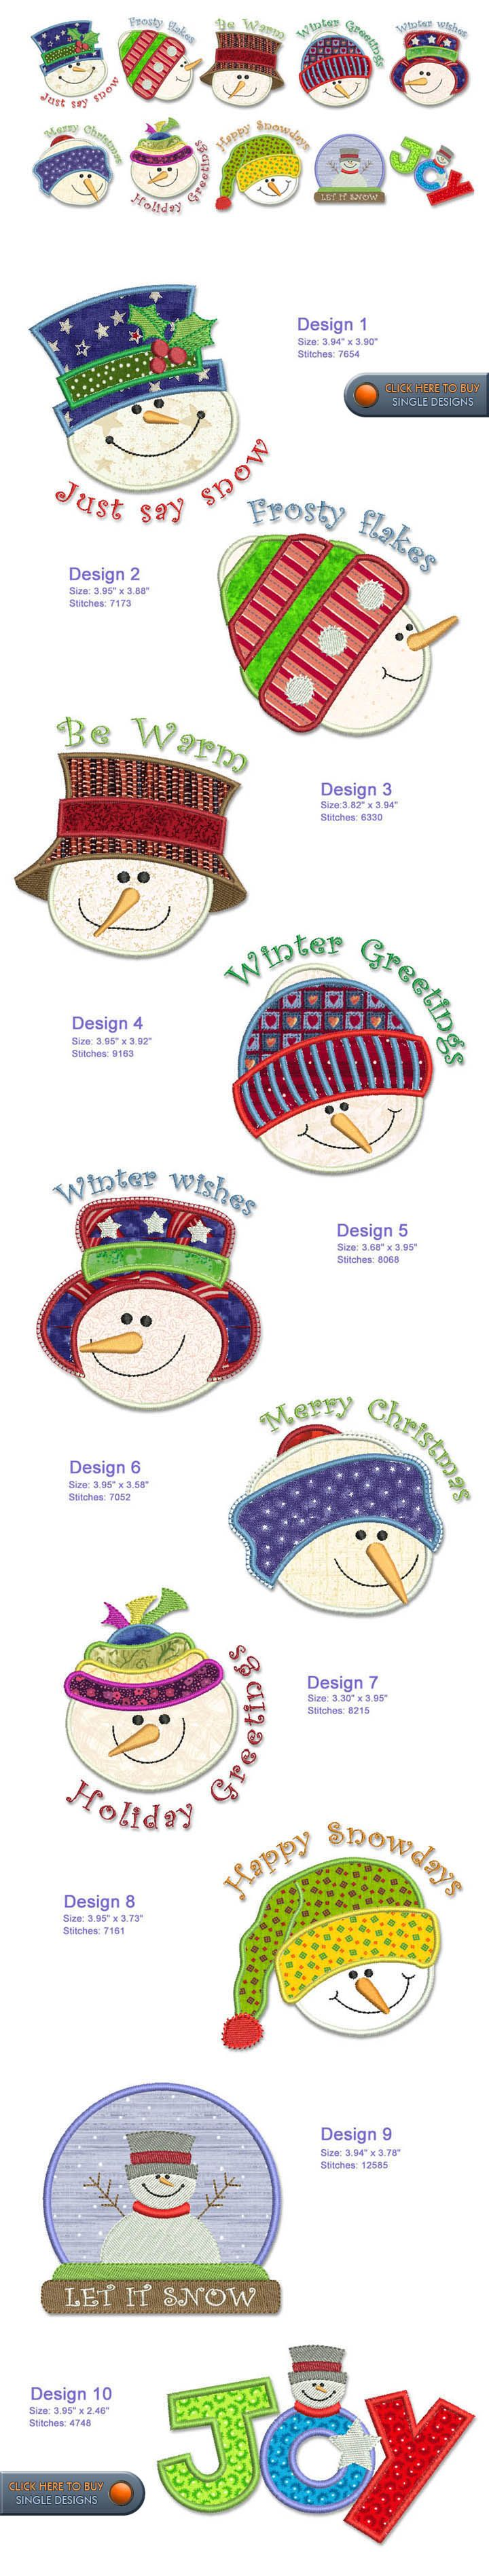 Good use for floss colors not generally used in packs of floss Snowman Embroidery Designs Free Embroidery Design Patterns Applique